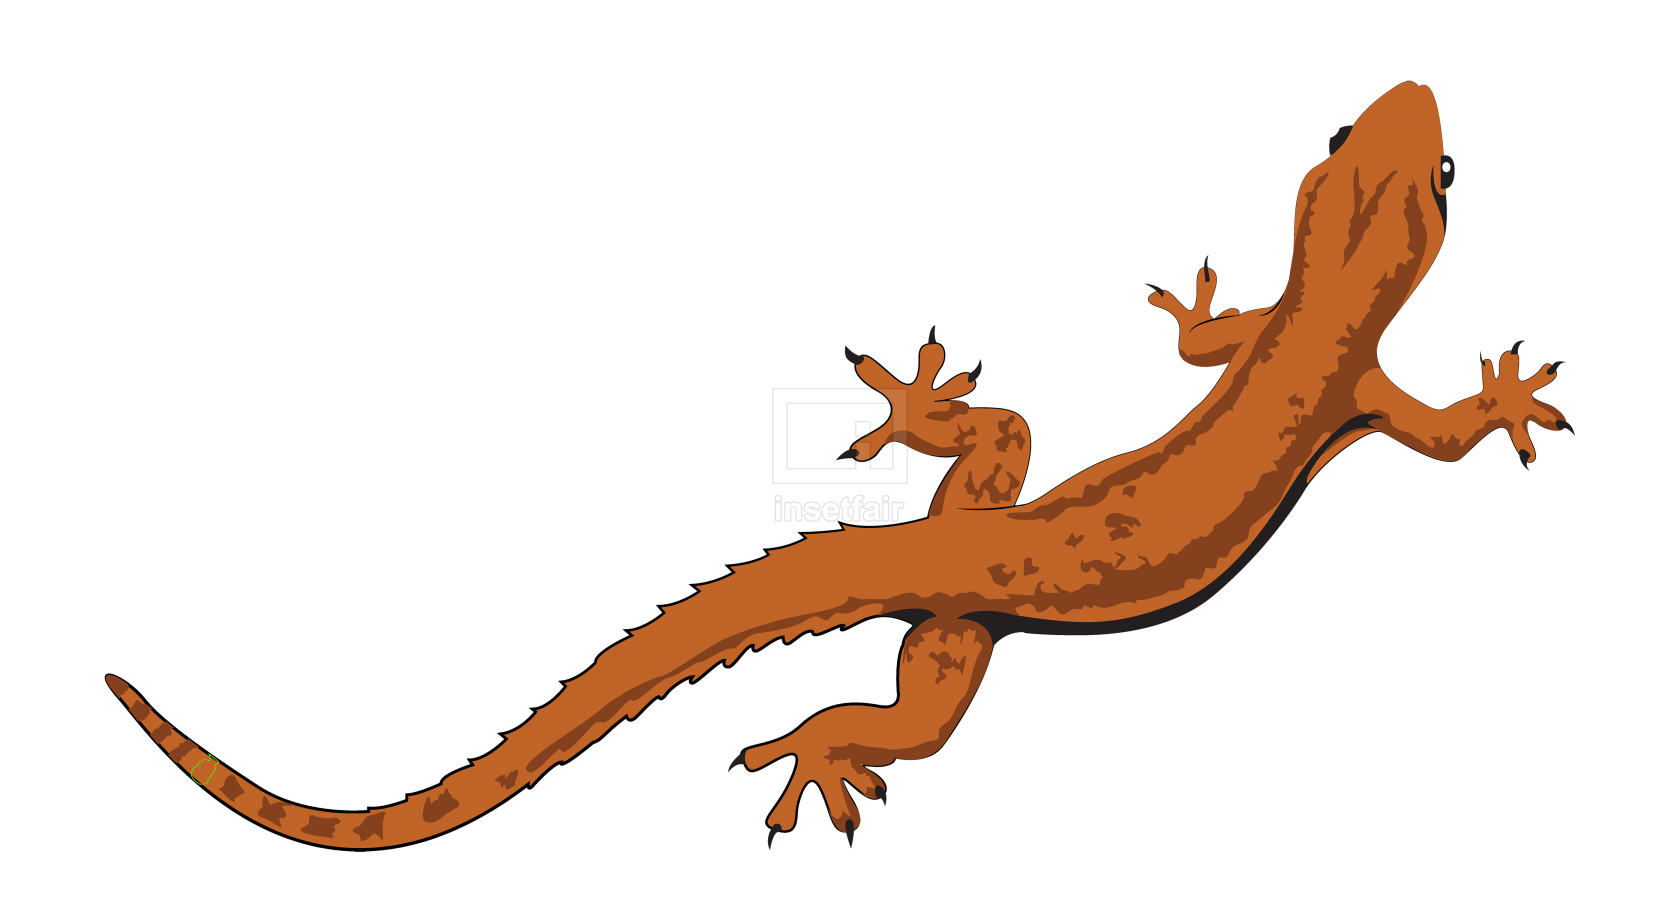 Gecko Lizard vector illustration in jpg and png format